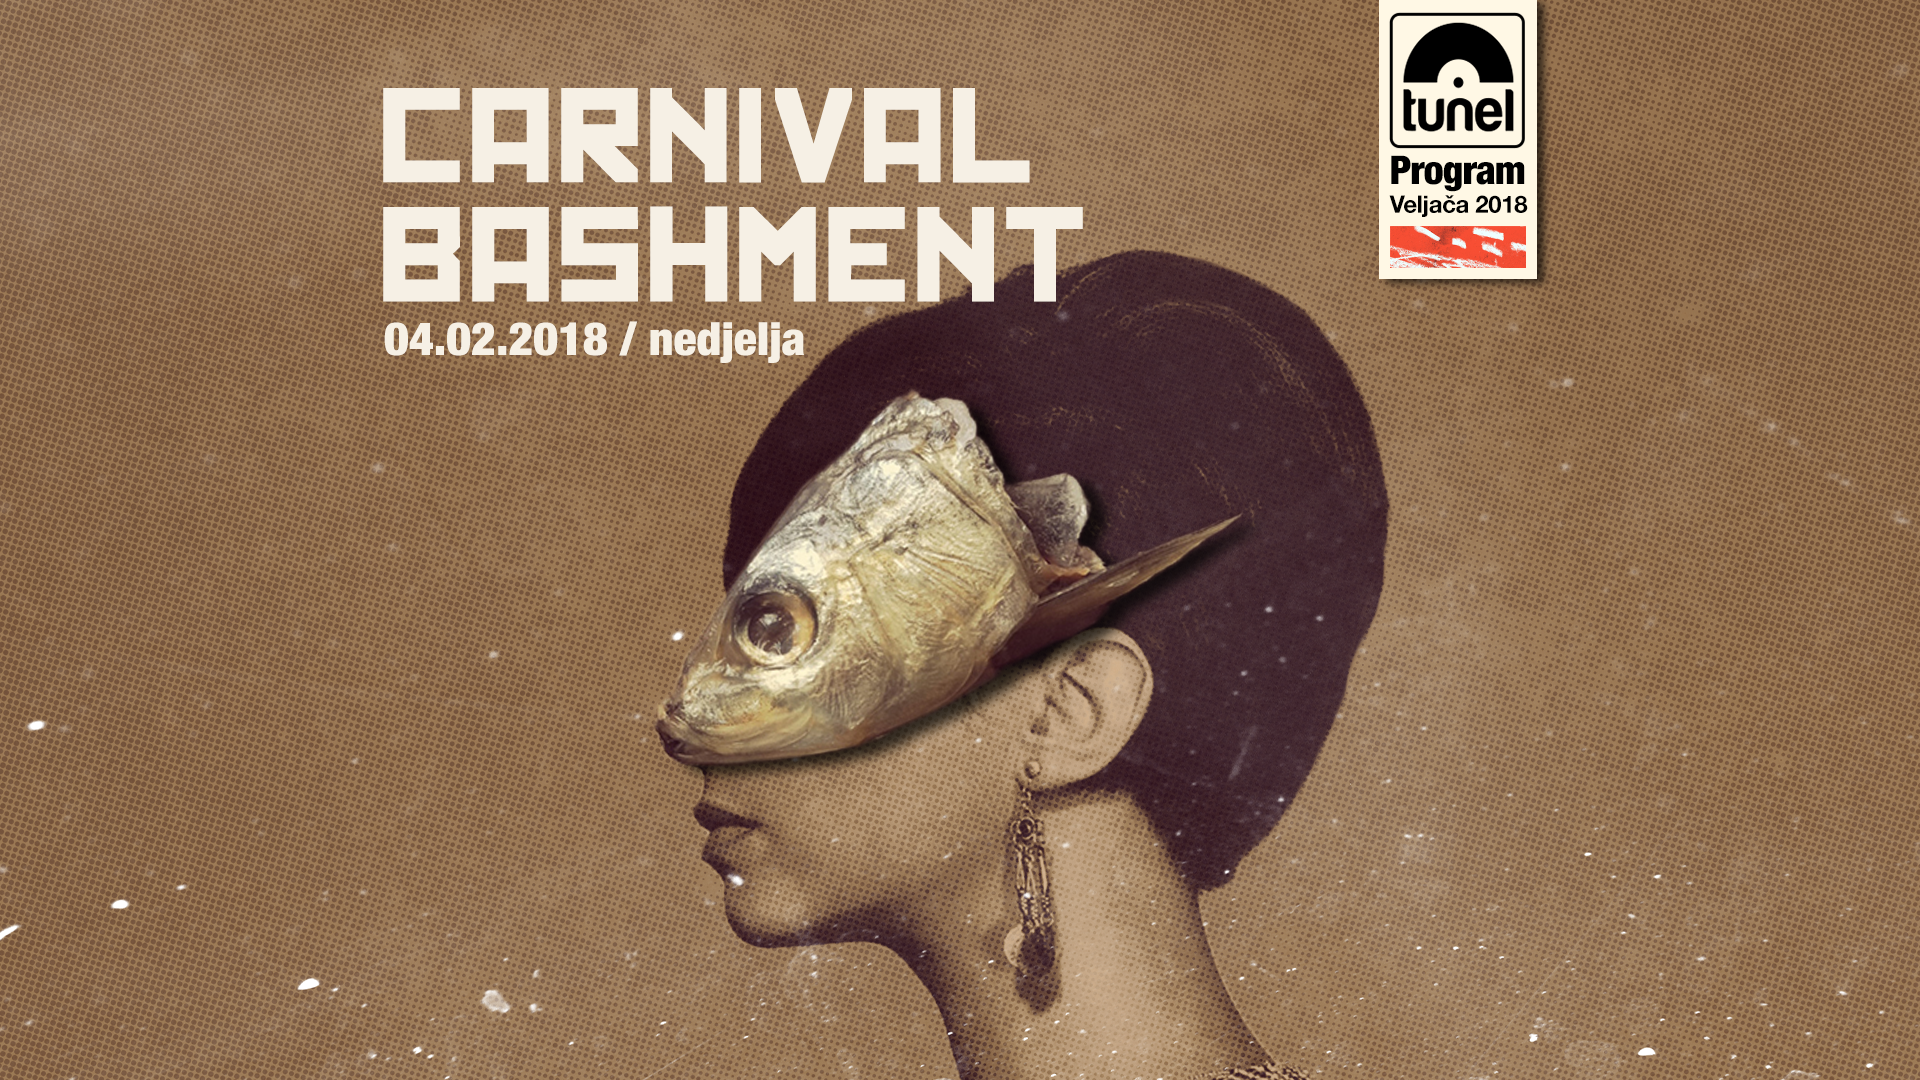 tunel-carnival-bashment.png